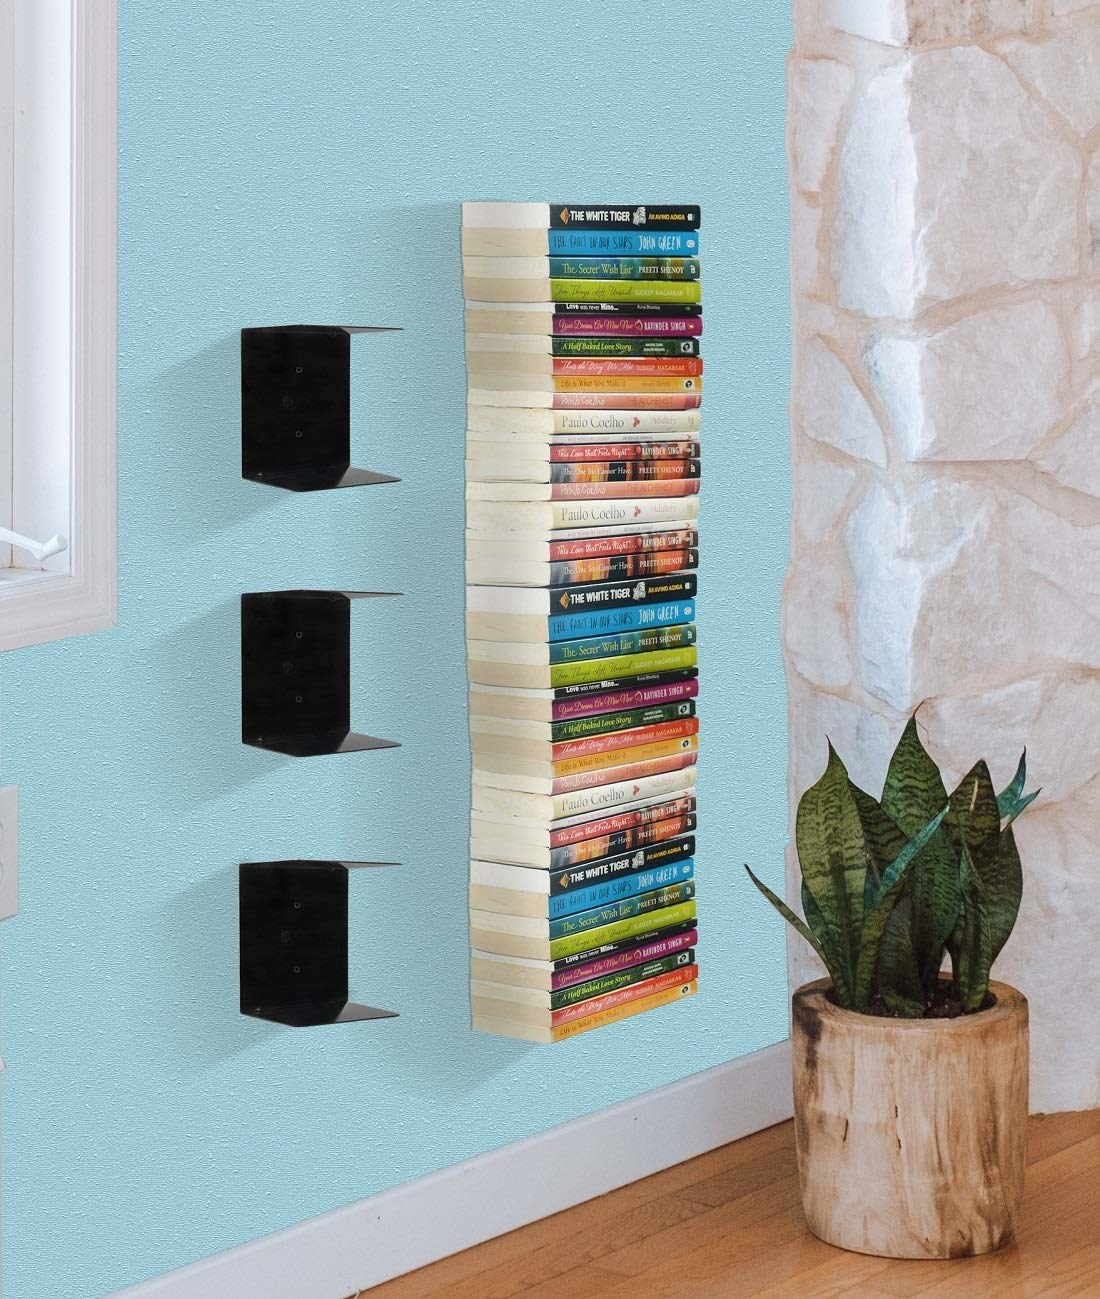 Three metal bookshelves with a top and bottom surface each, pictured with books on them.